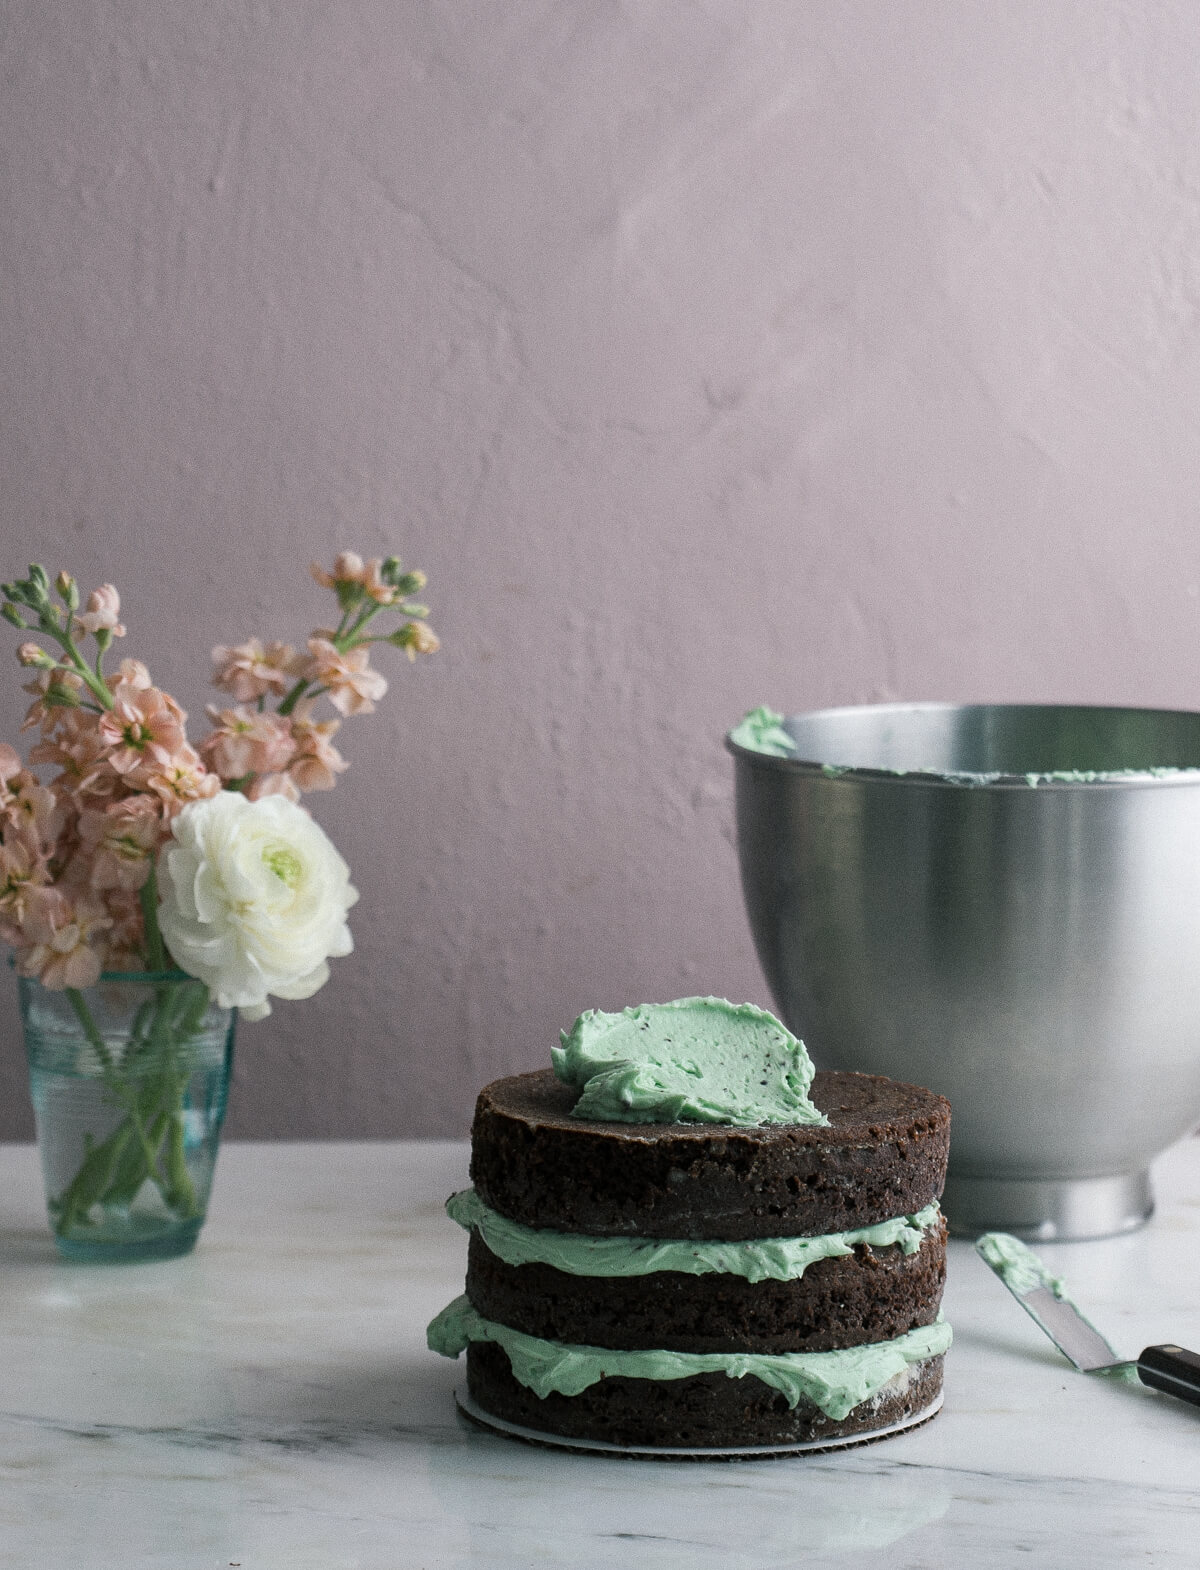 Mint Chocolate Chip Cake – A Cozy Kitchen